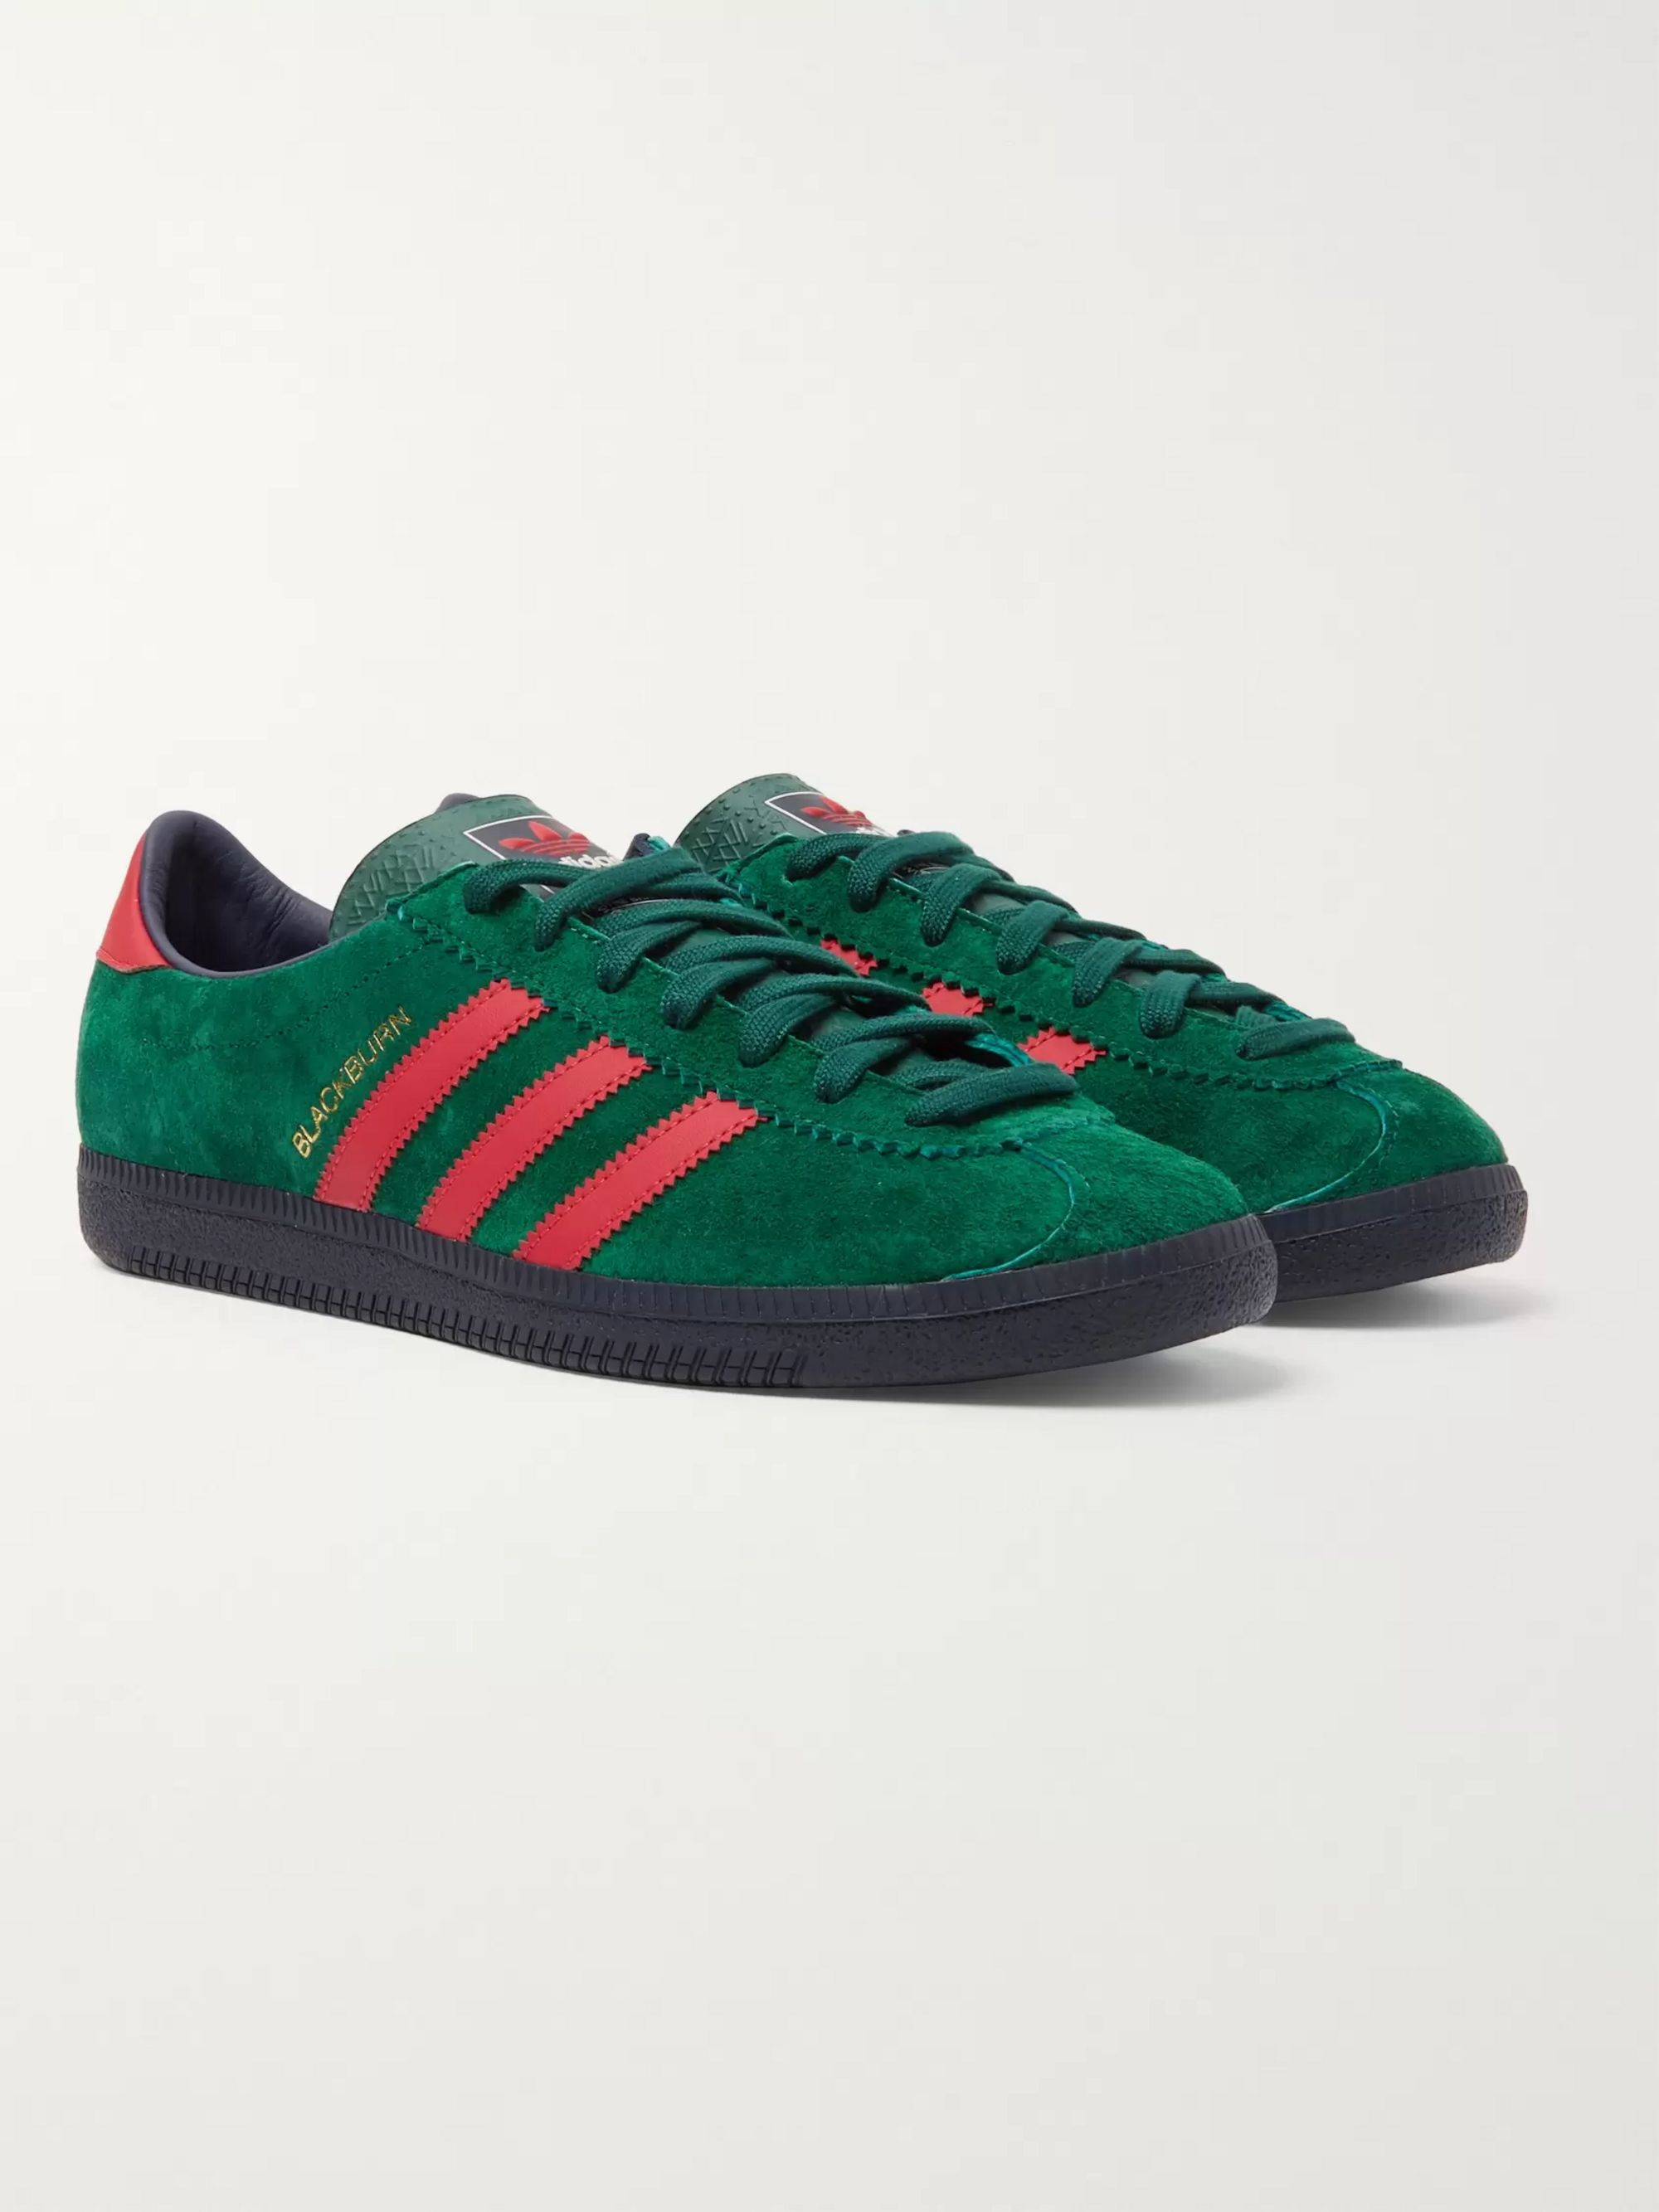 Adidas Originals Spzl Blackburn Green Scarlet Red Spezial UK 5 7 8 9 10 11 New